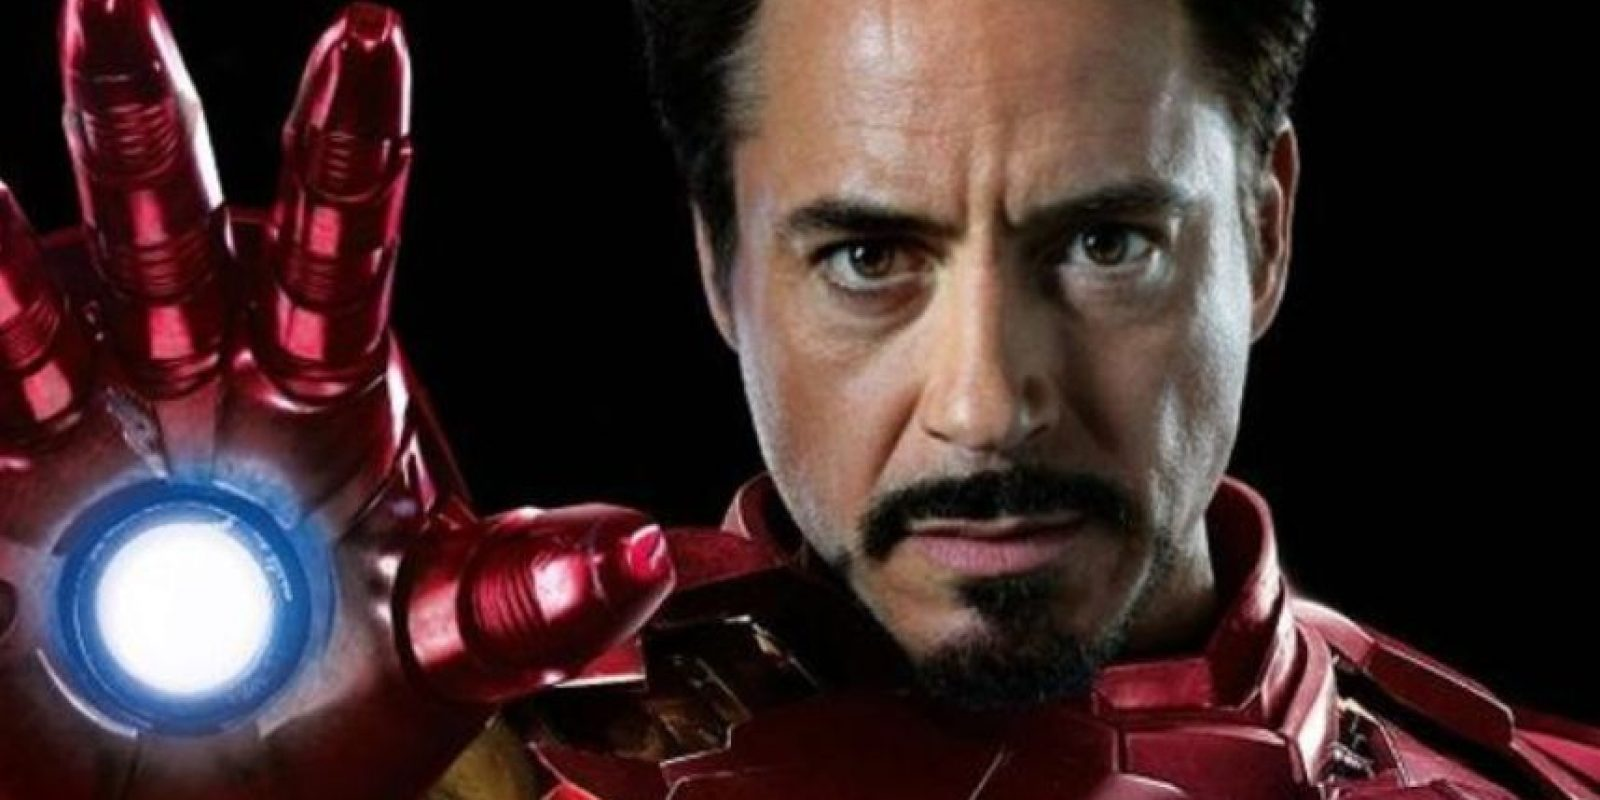 ¡Él es Iron Man! Foto: Marvel